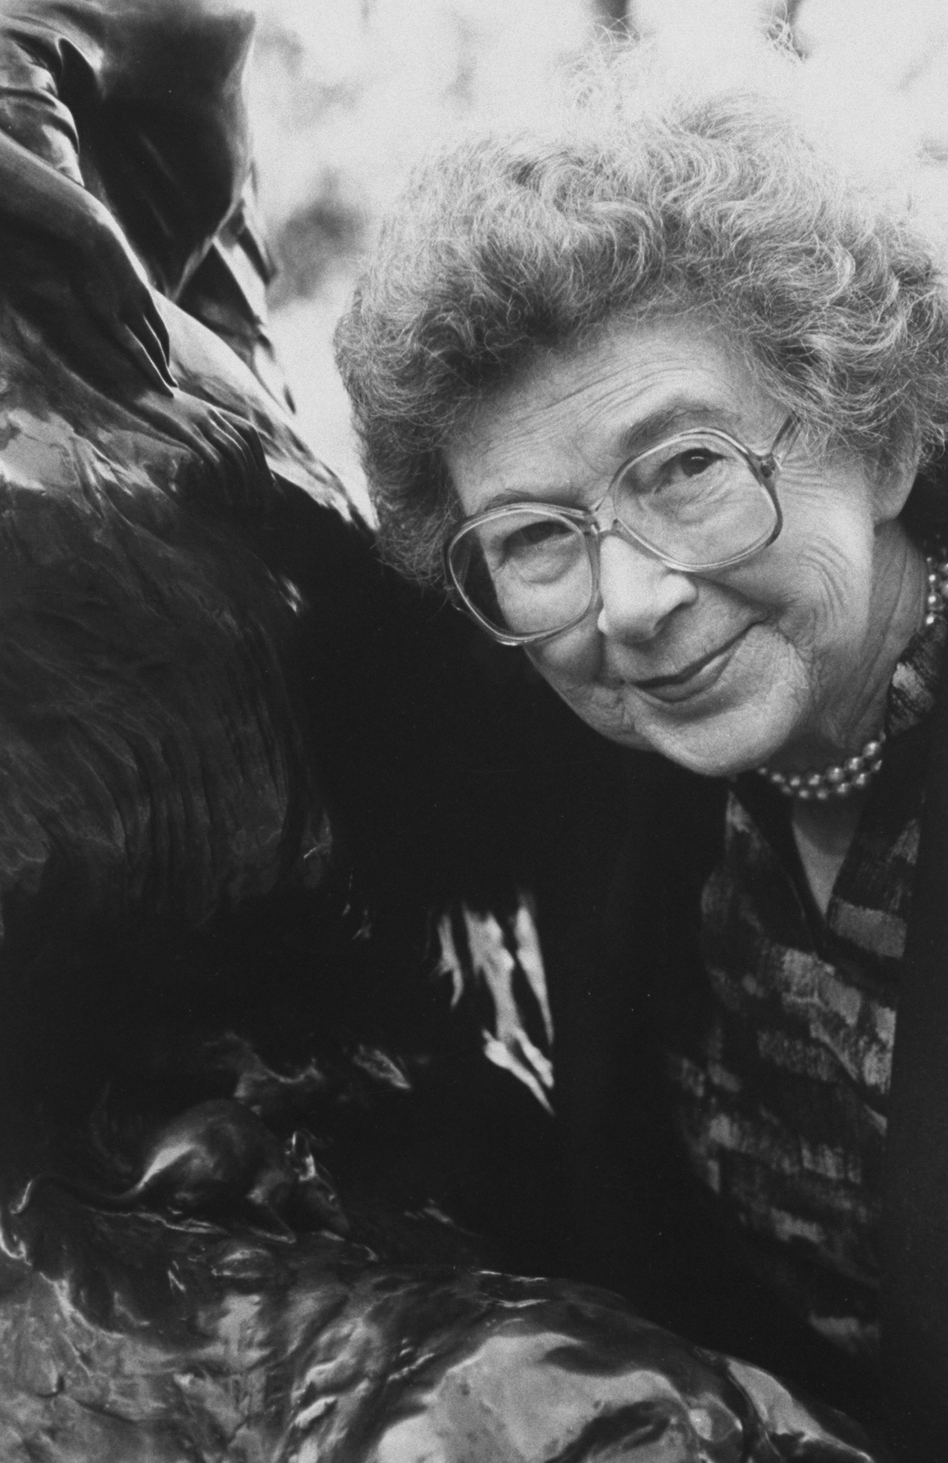 Beverly Cleary was the author behind many beloved characters, including Henry Huggins, Ellen Tebbits, Otis Spofford, and Beezus and Ramona Quimby (as well as Ribsy, Socks and Ralph S. Mouse). (Terry Smith/Time )